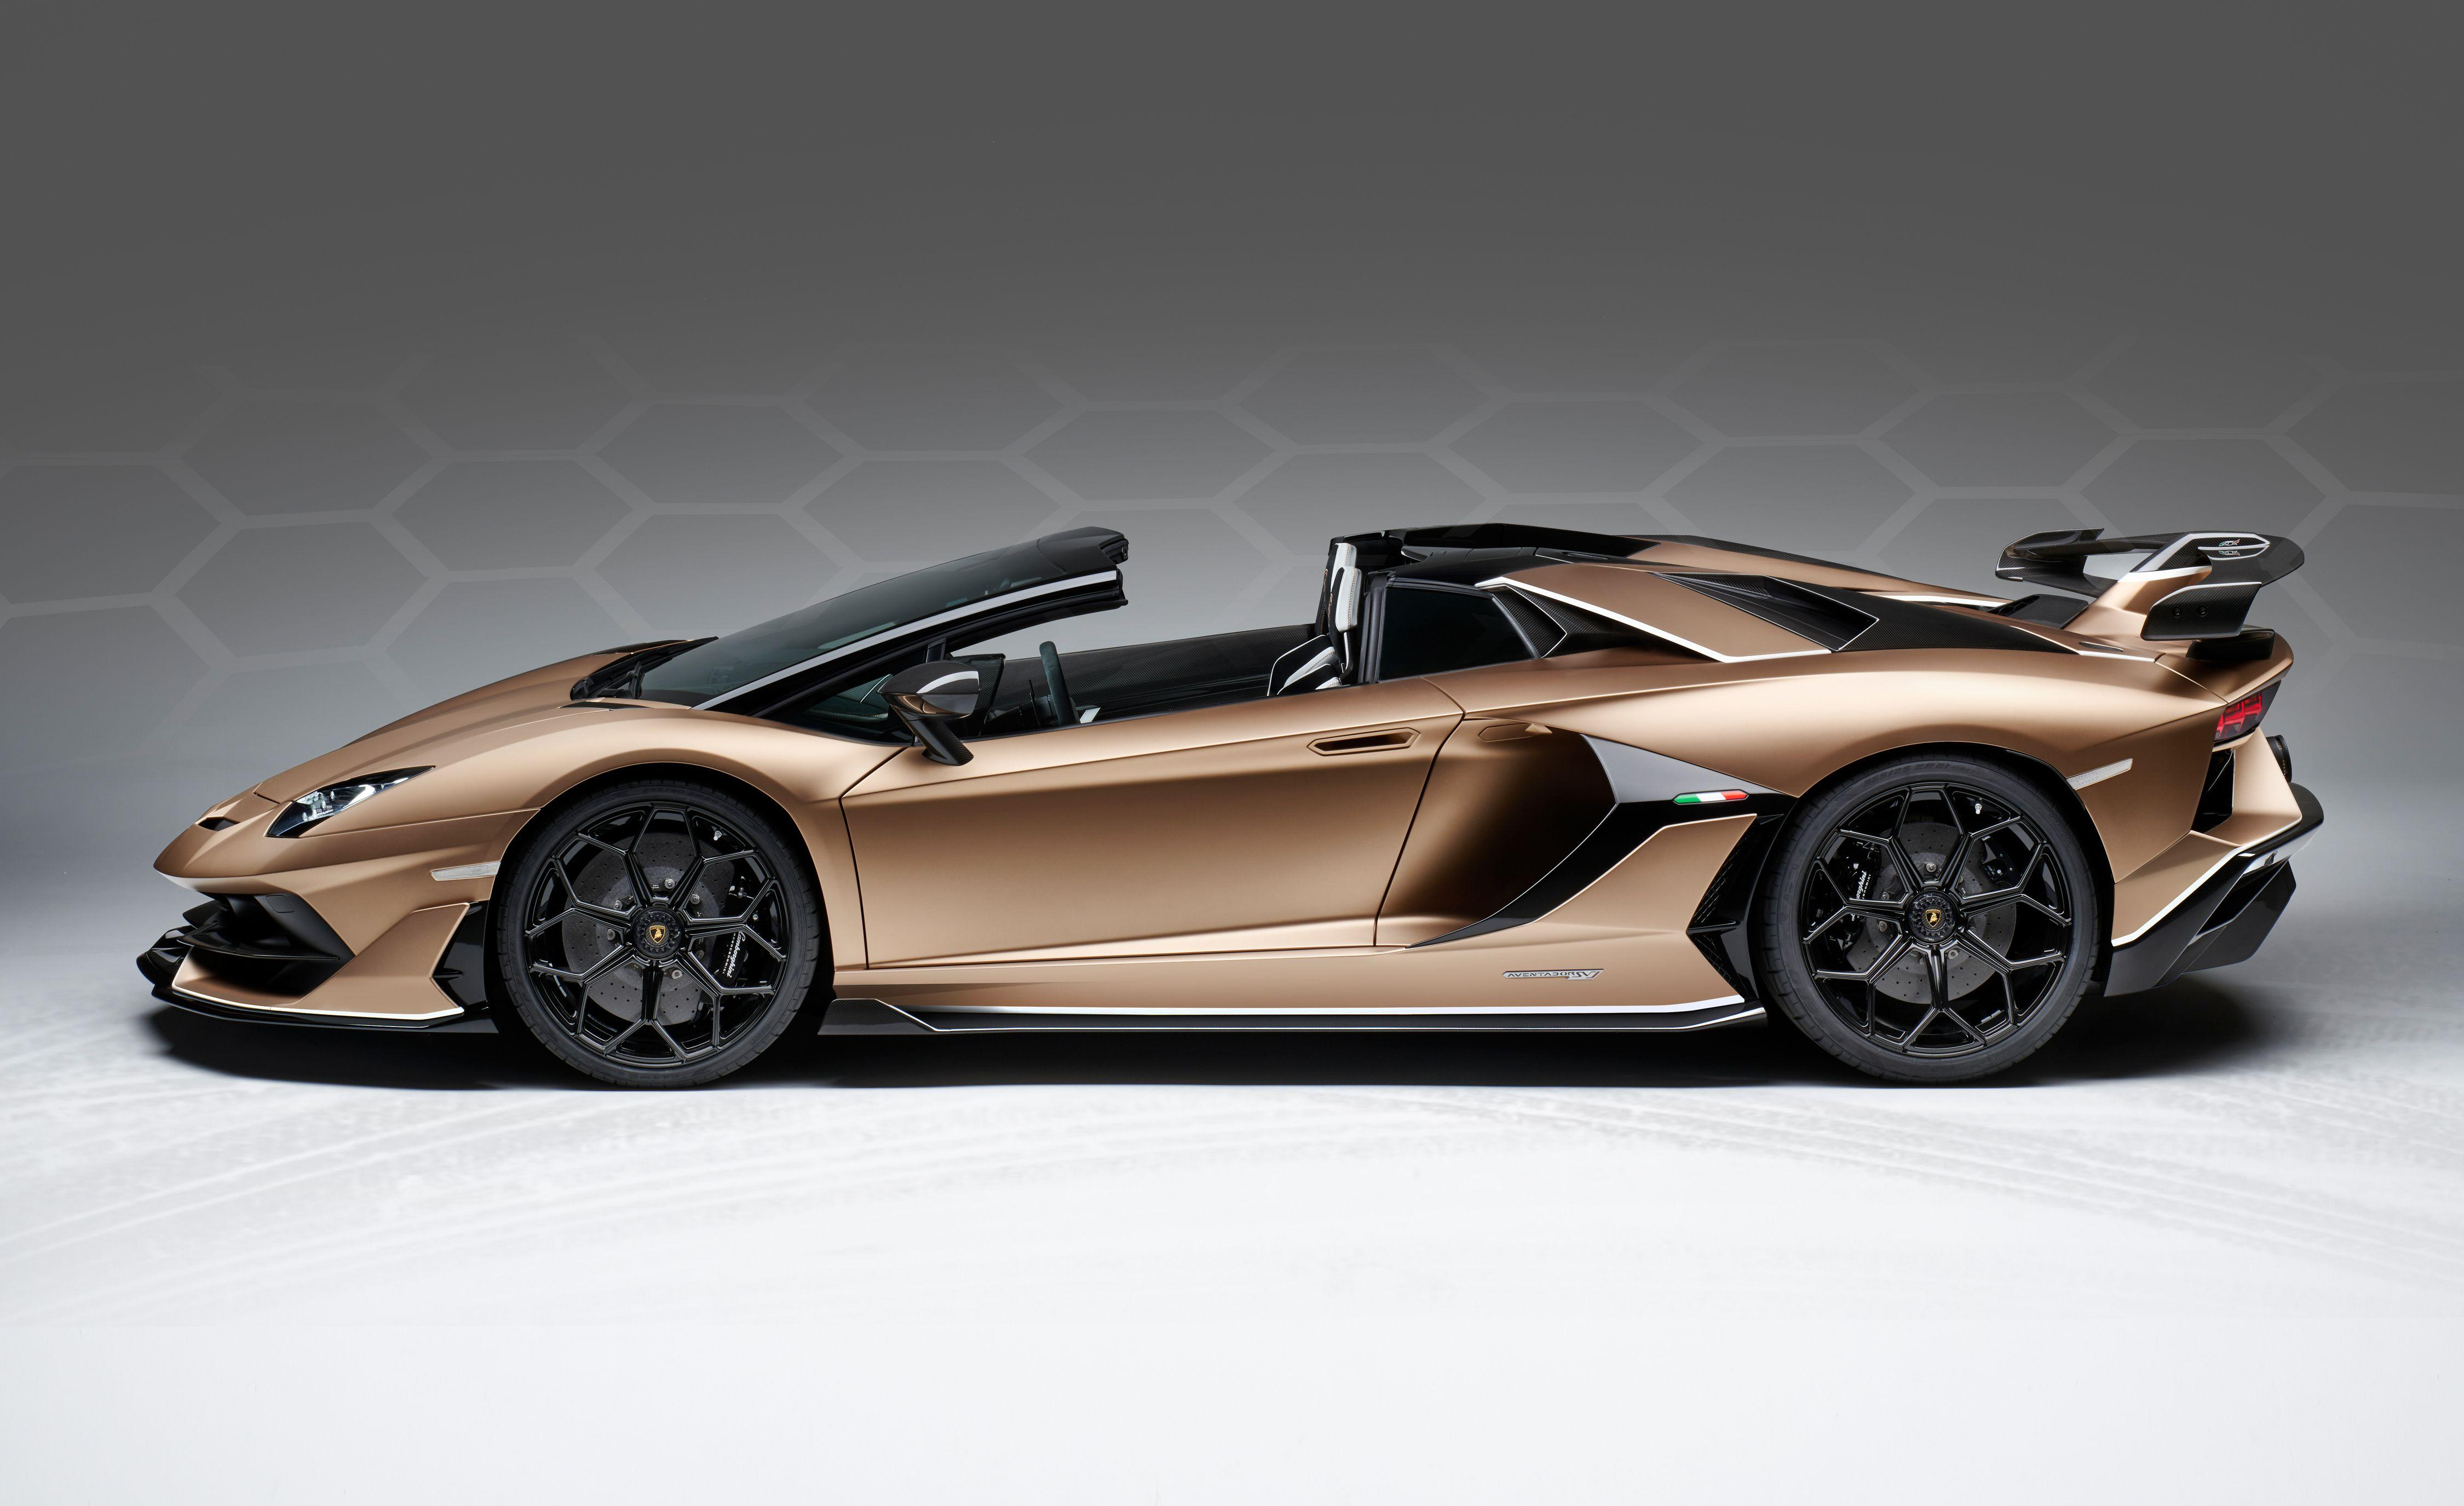 """<p>It's pretty much a given that when a new Lamborghini coupe comes out, a droptop model is sure to follow. This has yet again been proven true with <a href=""""https://www.caranddriver.com/lamborghini/aventador"""" rel=""""nofollow noopener"""" target=""""_blank"""" data-ylk=""""slk:the Aventador"""" class=""""link rapid-noclick-resp"""">the Aventador</a> SVJ Roadster, which has just debuted at the Geneva auto show. Like the name says, this is <a href=""""https://www.caranddriver.com/reviews/a23365573/2019-lamborghini-aventador-svj-759-hp-warrior/"""" rel=""""nofollow noopener"""" target=""""_blank"""" data-ylk=""""slk:an Aventador SVJ coupe"""" class=""""link rapid-noclick-resp"""">an Aventador SVJ coupe</a> with the roof lopped off-and no other changes made.</p>"""